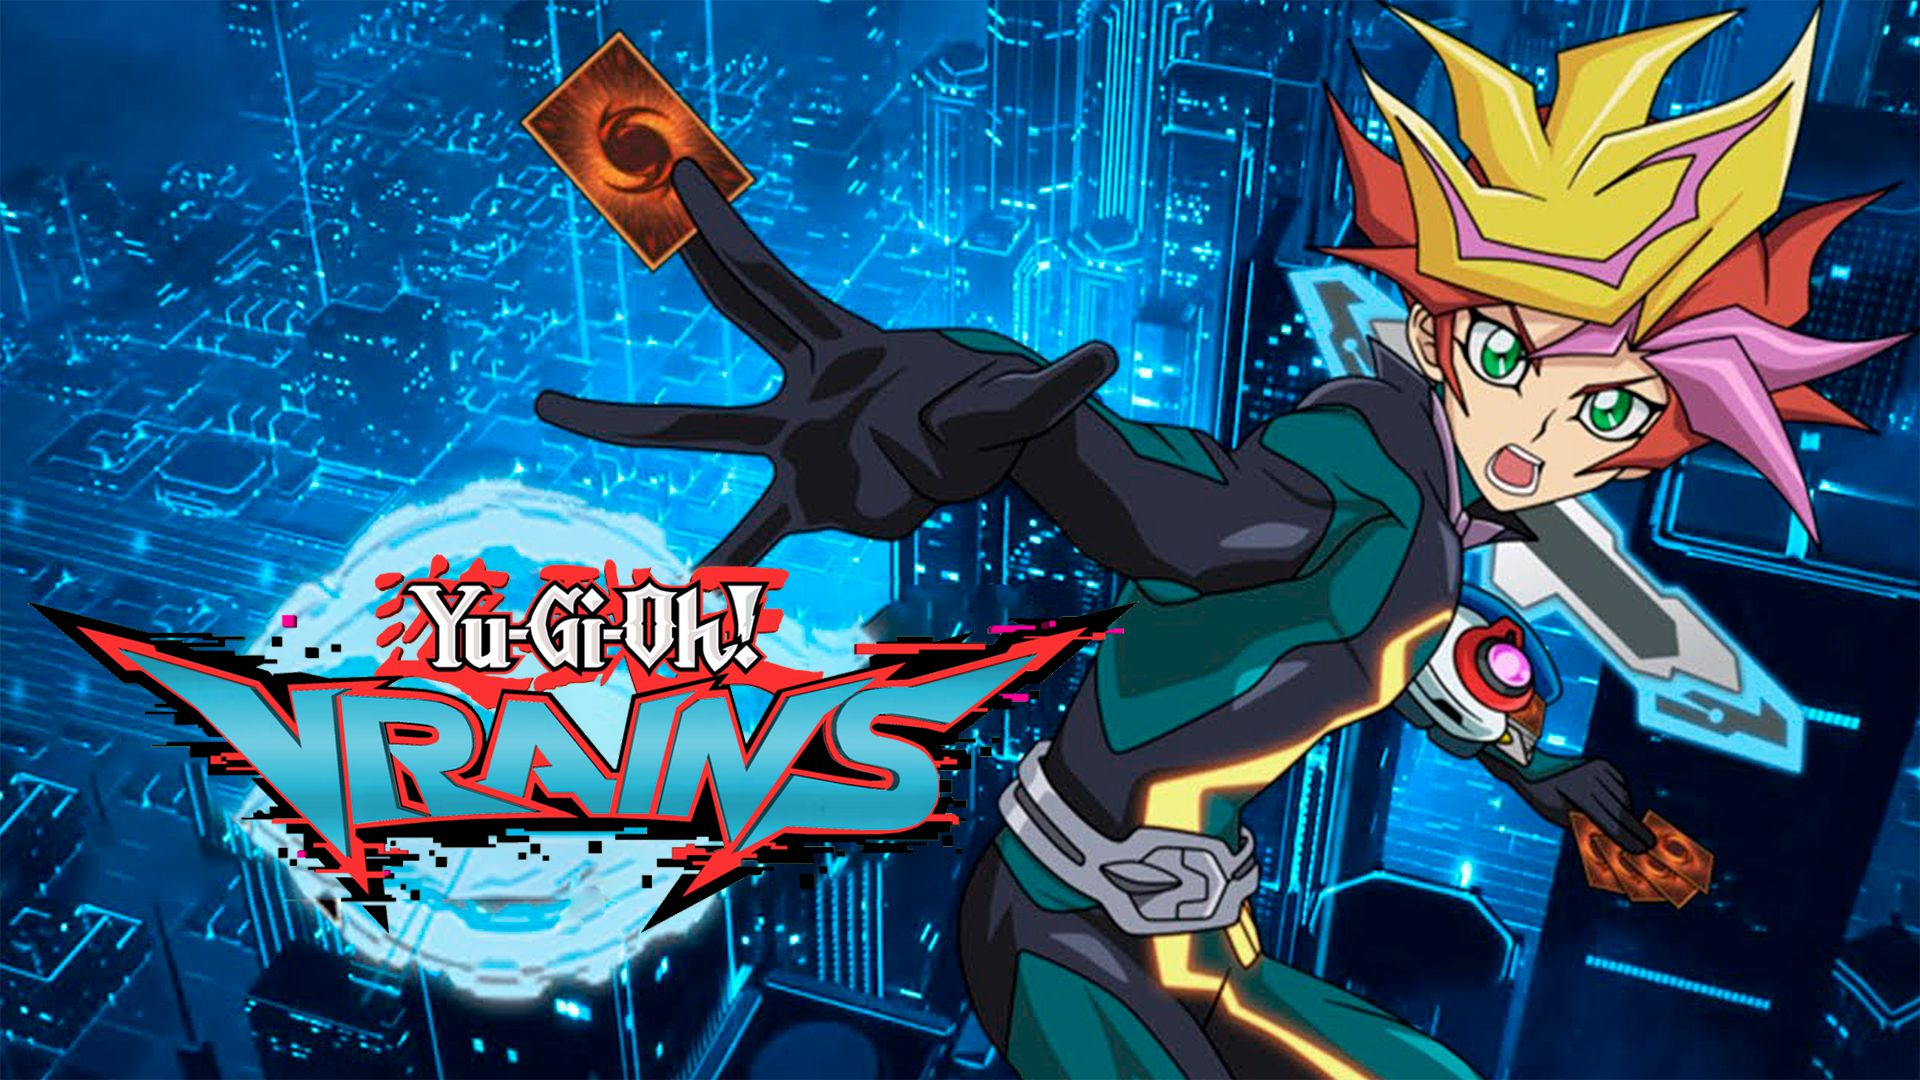 Watch Yu-Gi-Oh! Vrains 2017, Catch Up TV